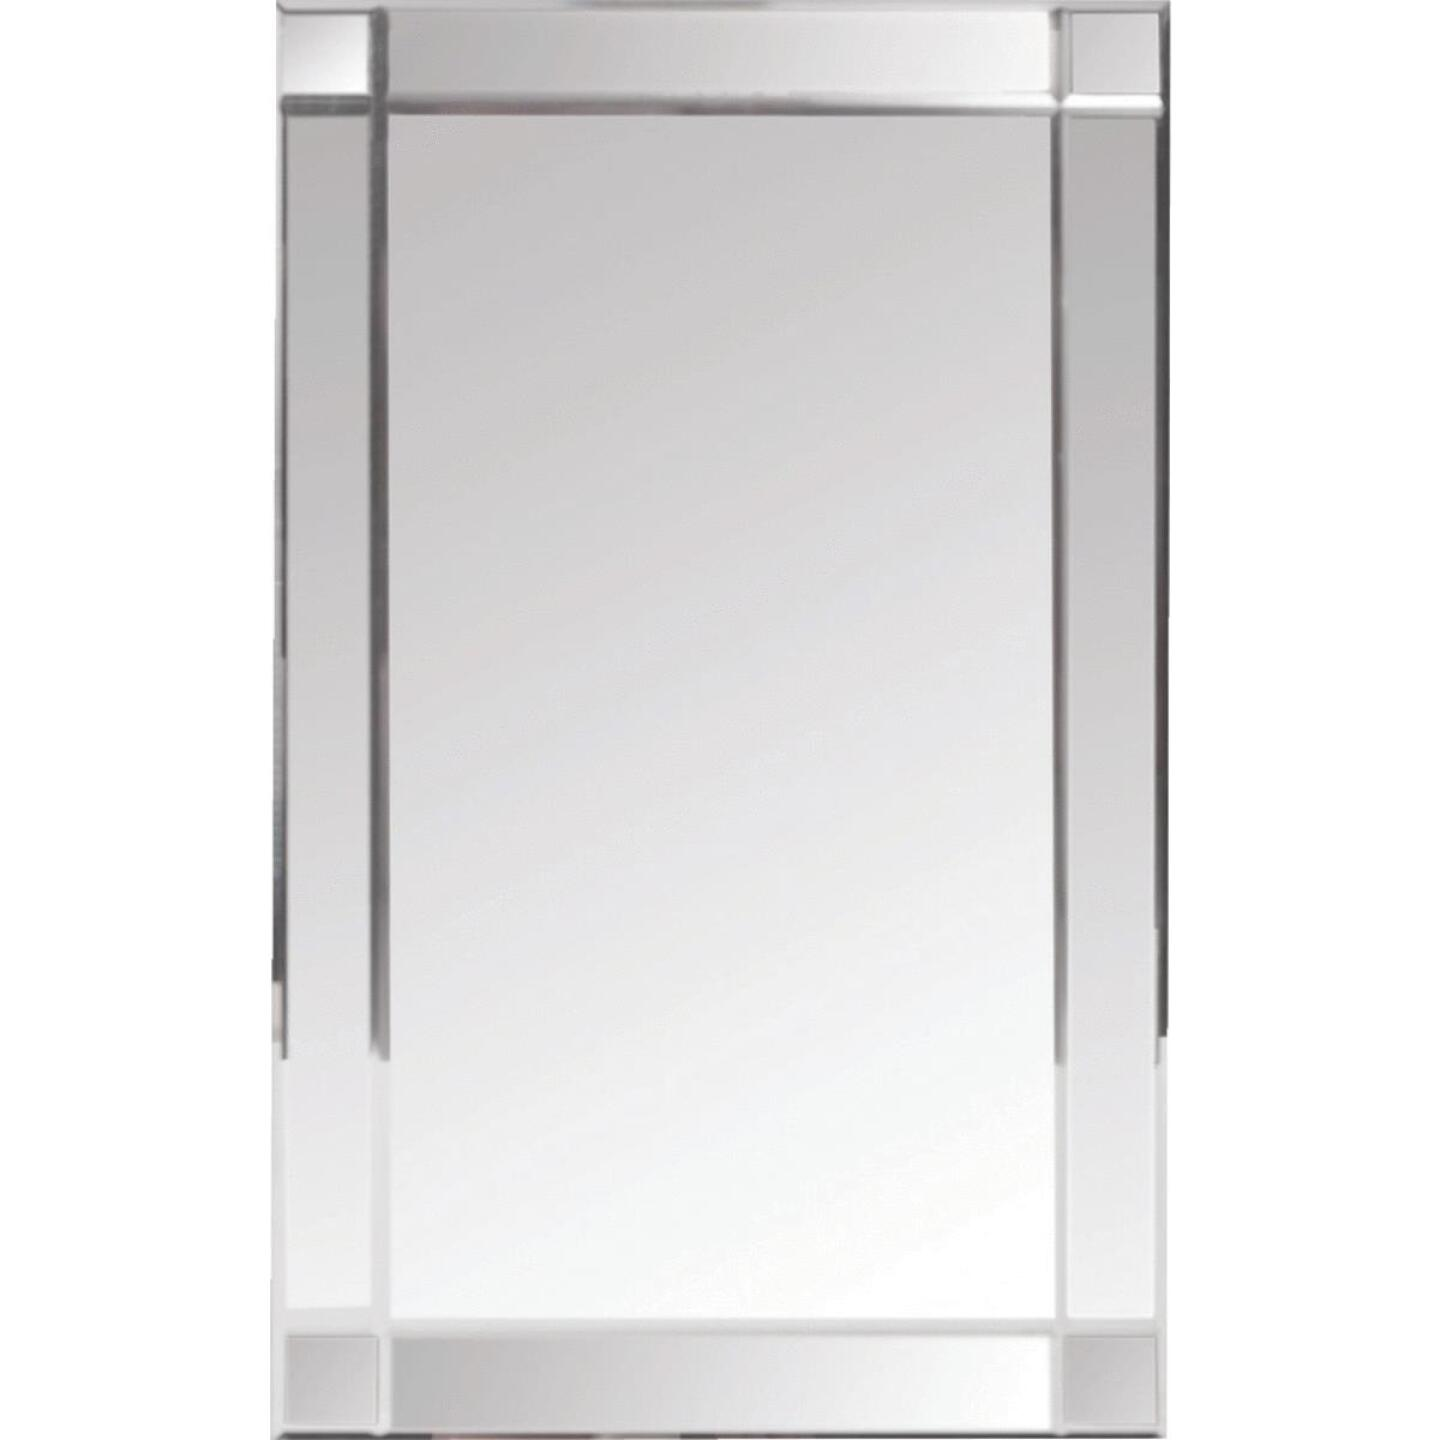 Zenith Frameless Beveled 16 In. W x 26-3/8 In. H x 4-1/2 In. D Single Mirror Surface Mount V-Groove Mirror Medicine Cabinet Image 1